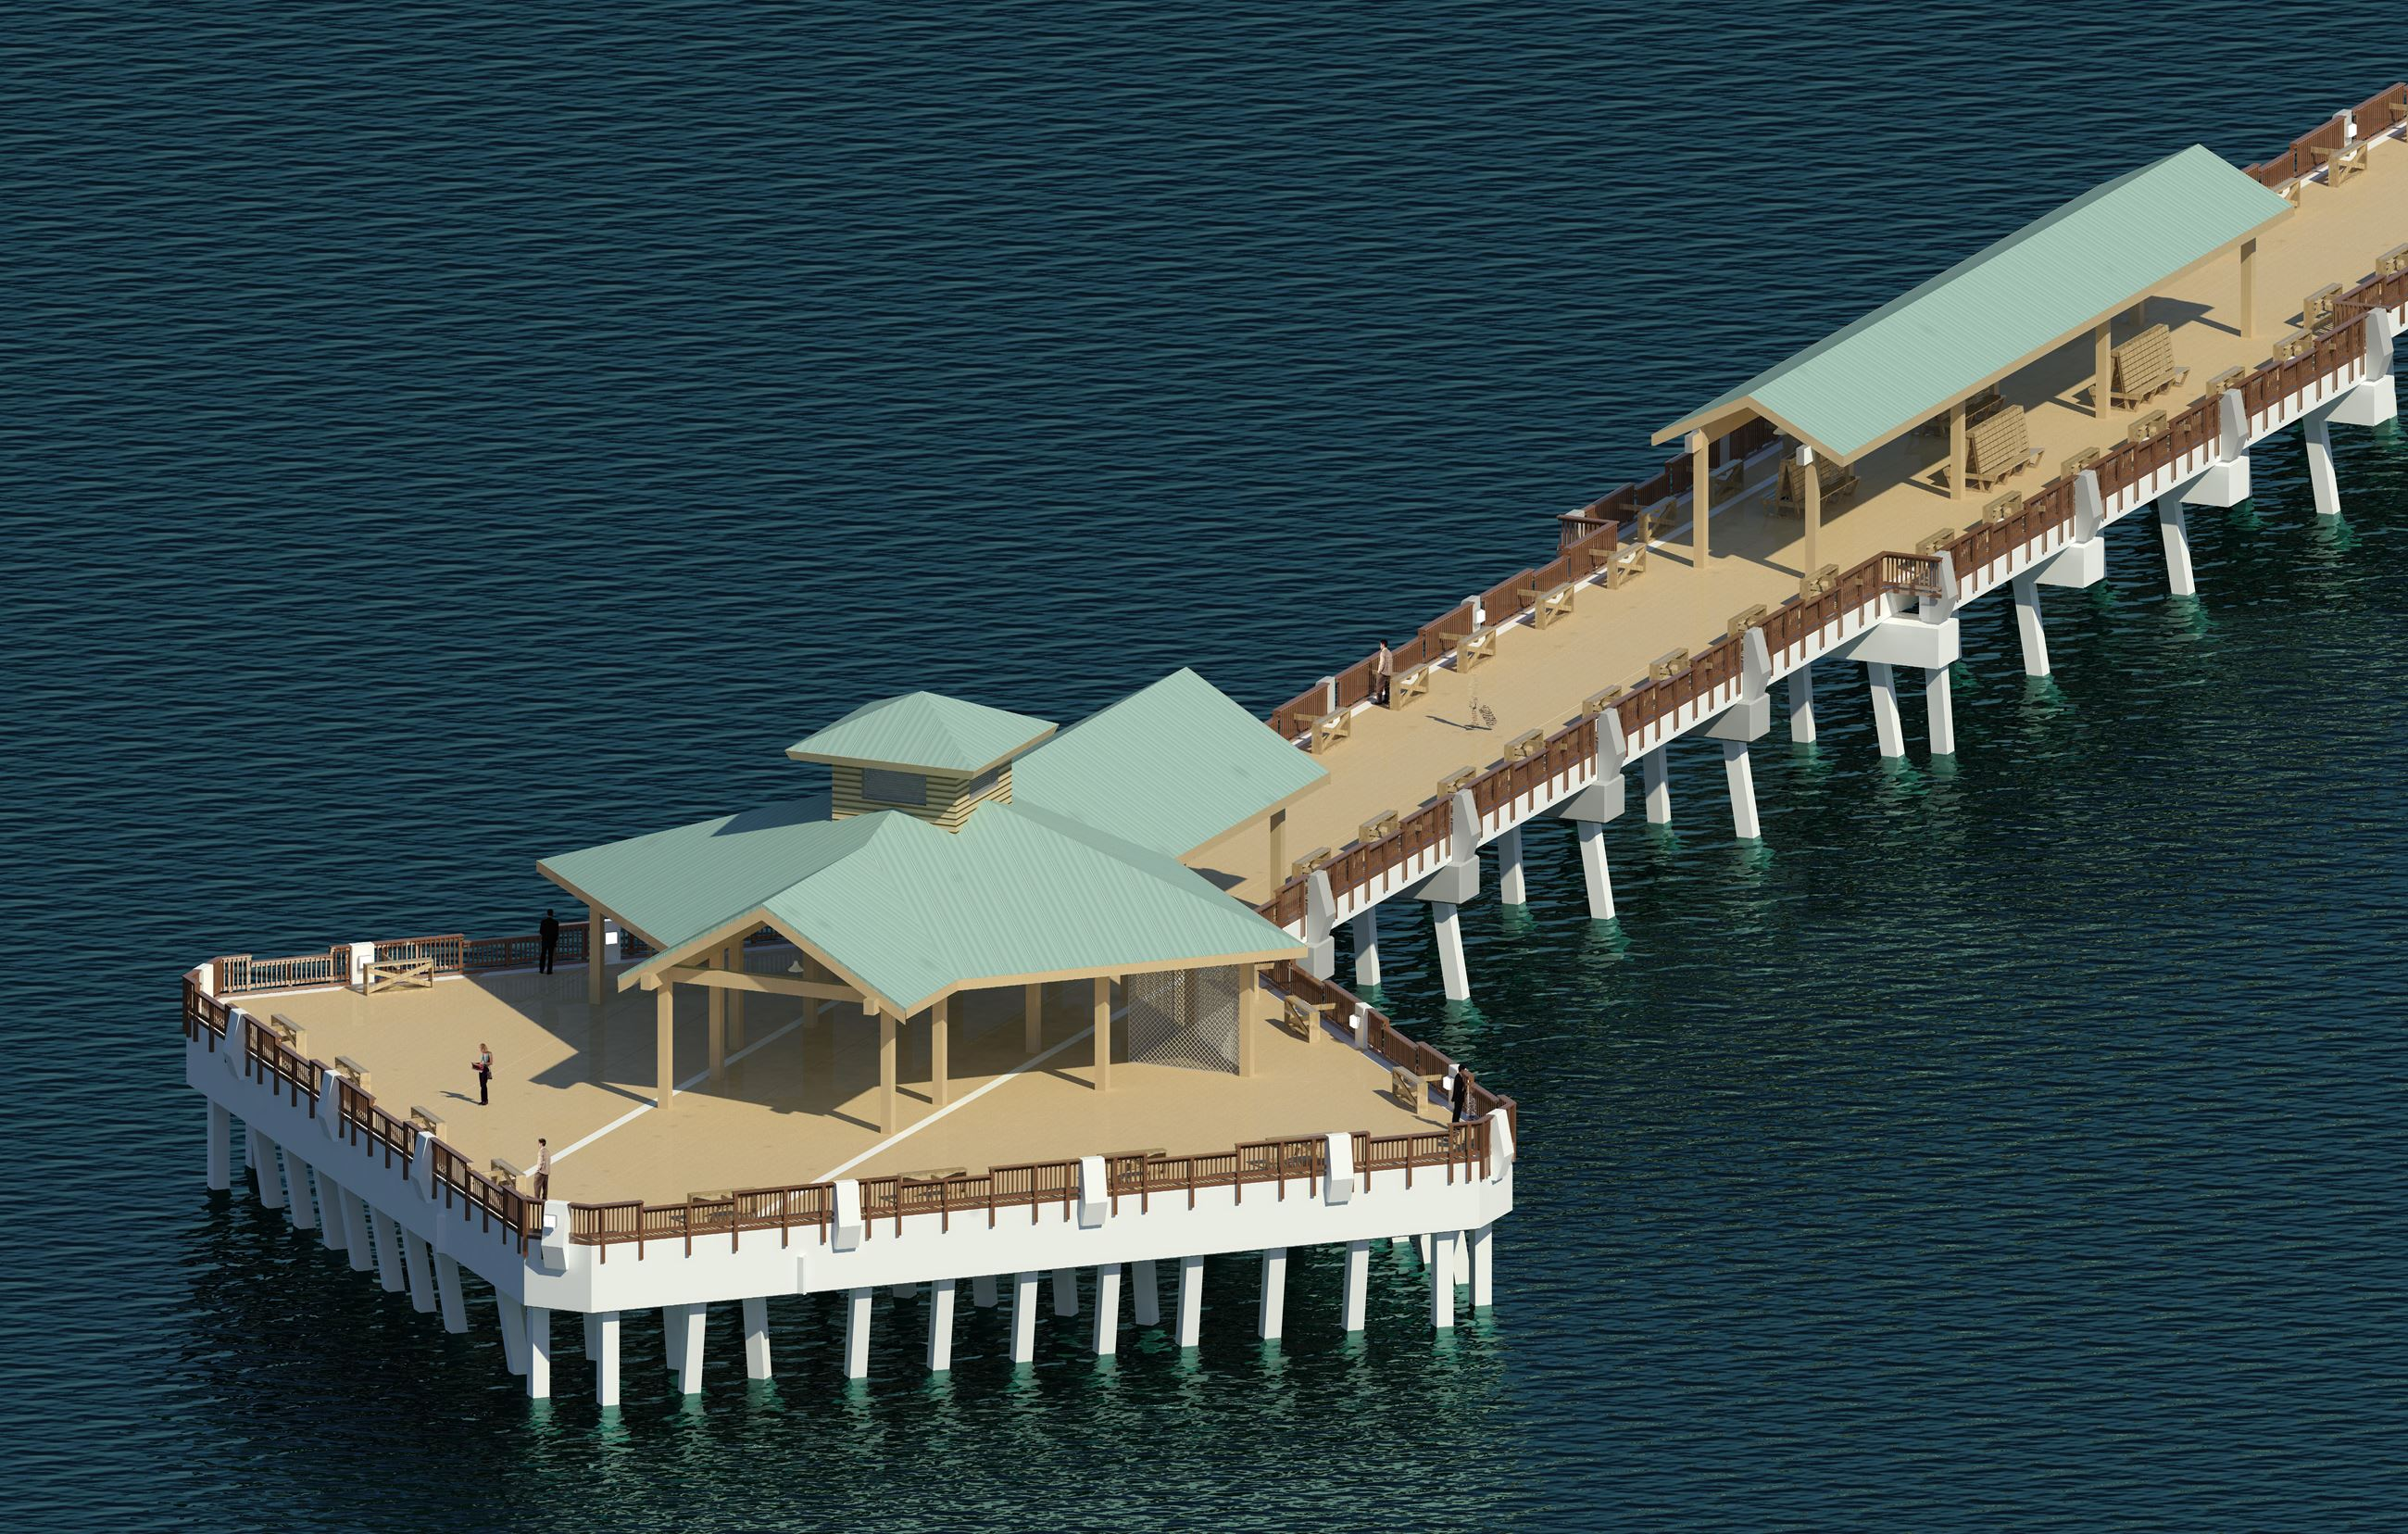 Digital rendering of the new Folly Beach Pier